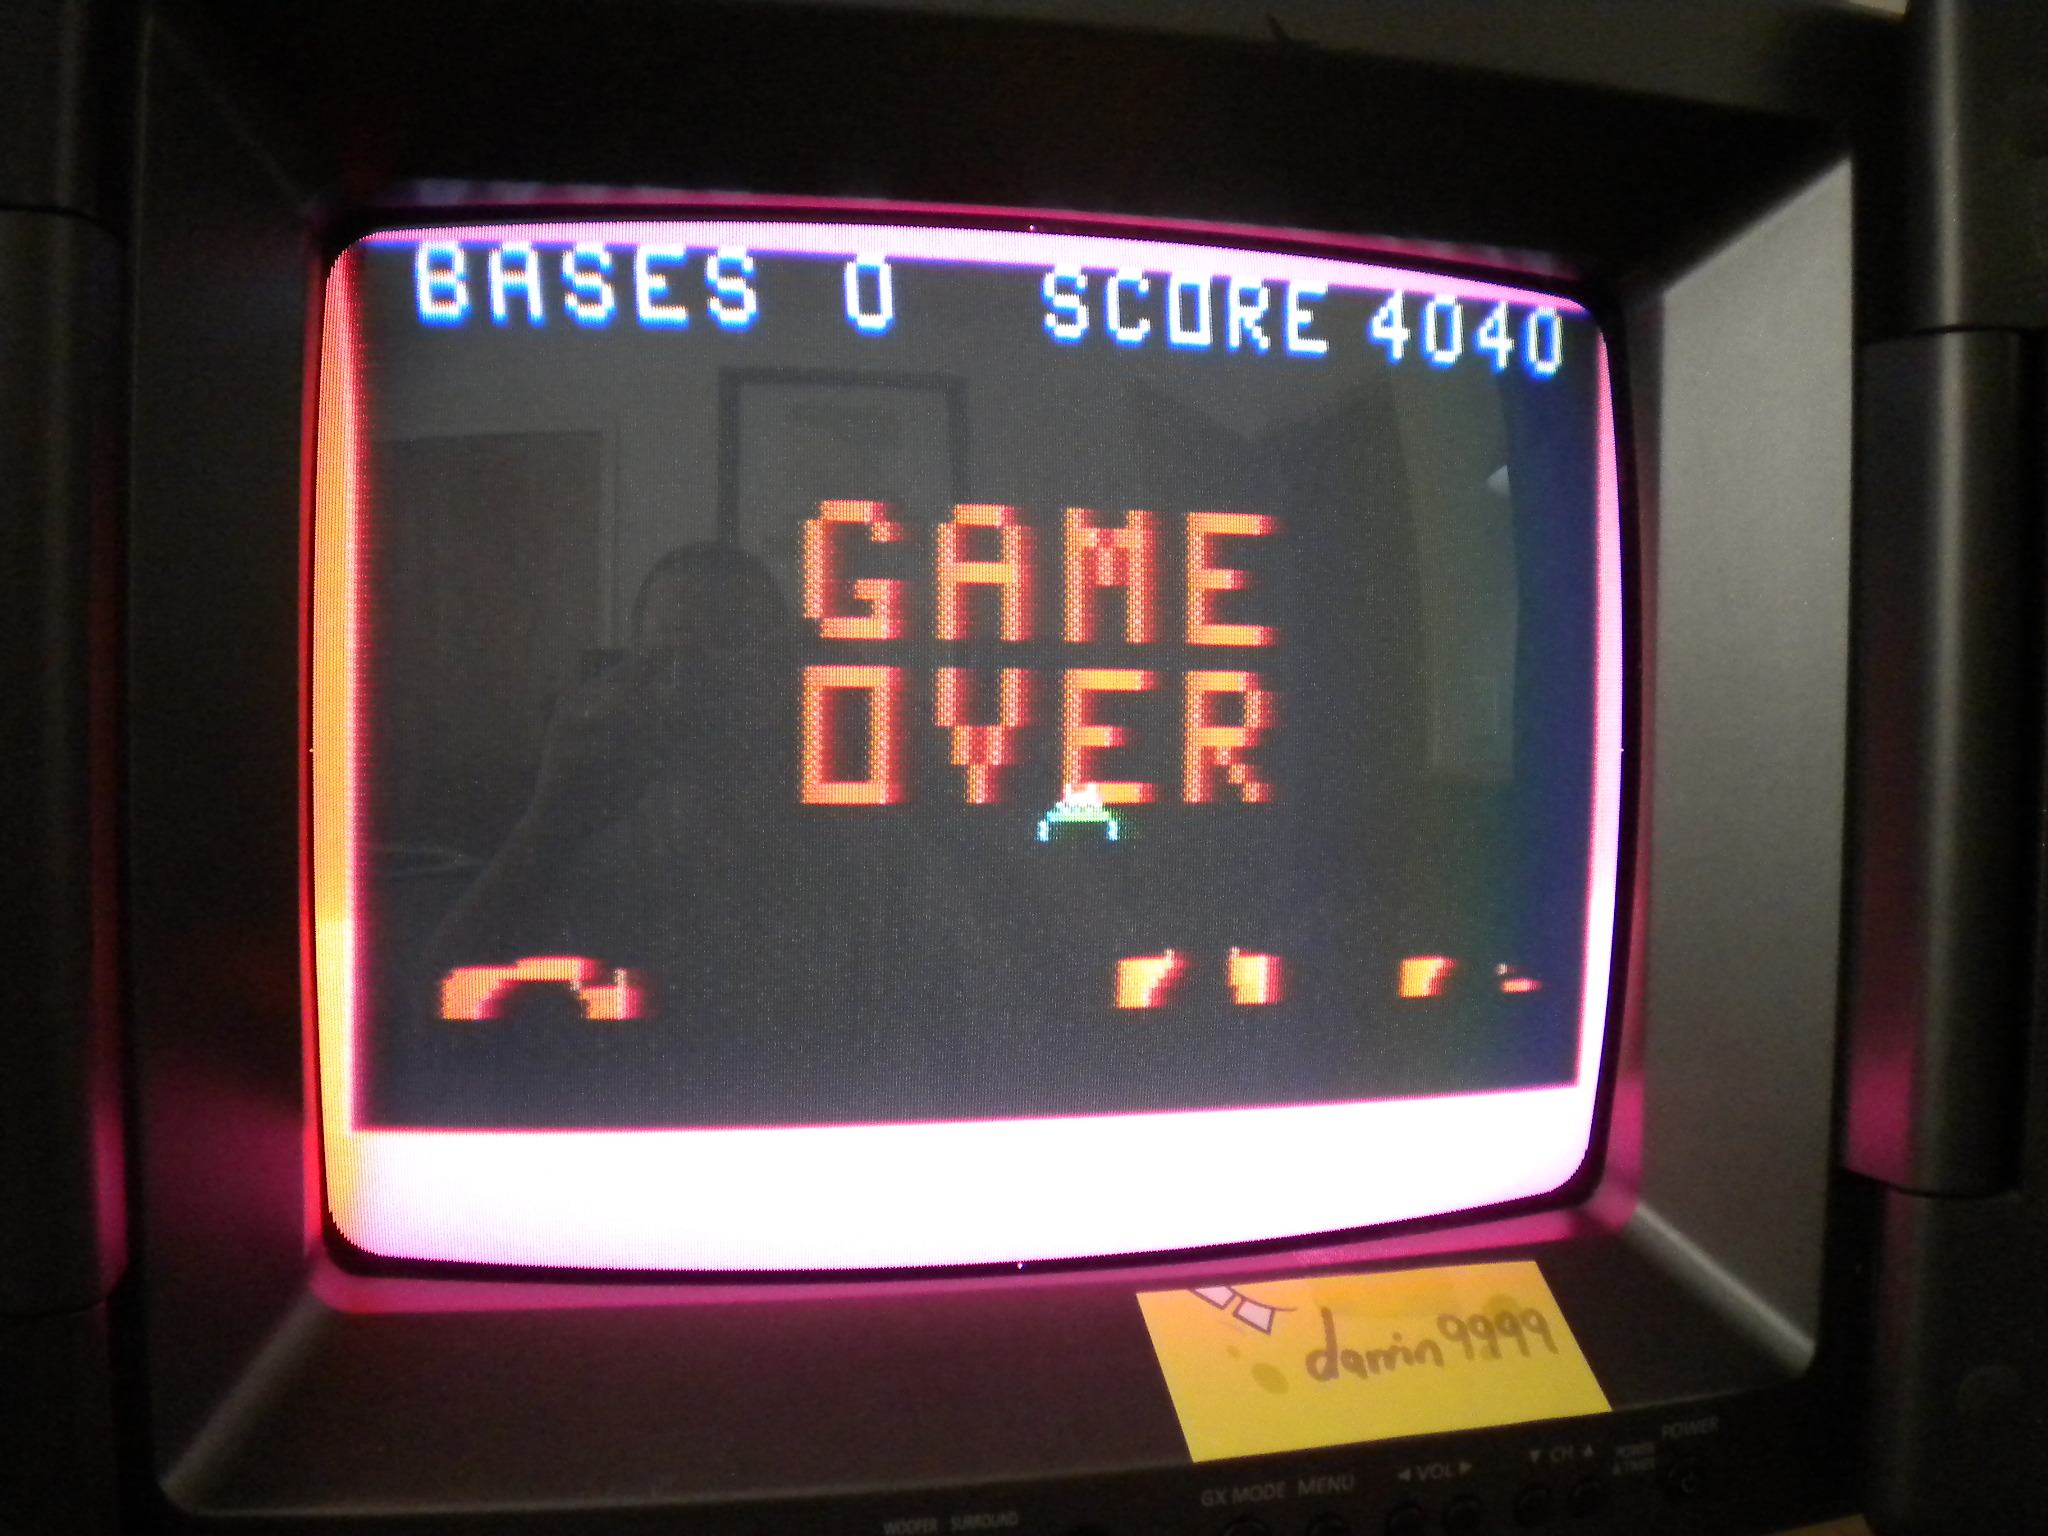 Astro Battle 4,040 points